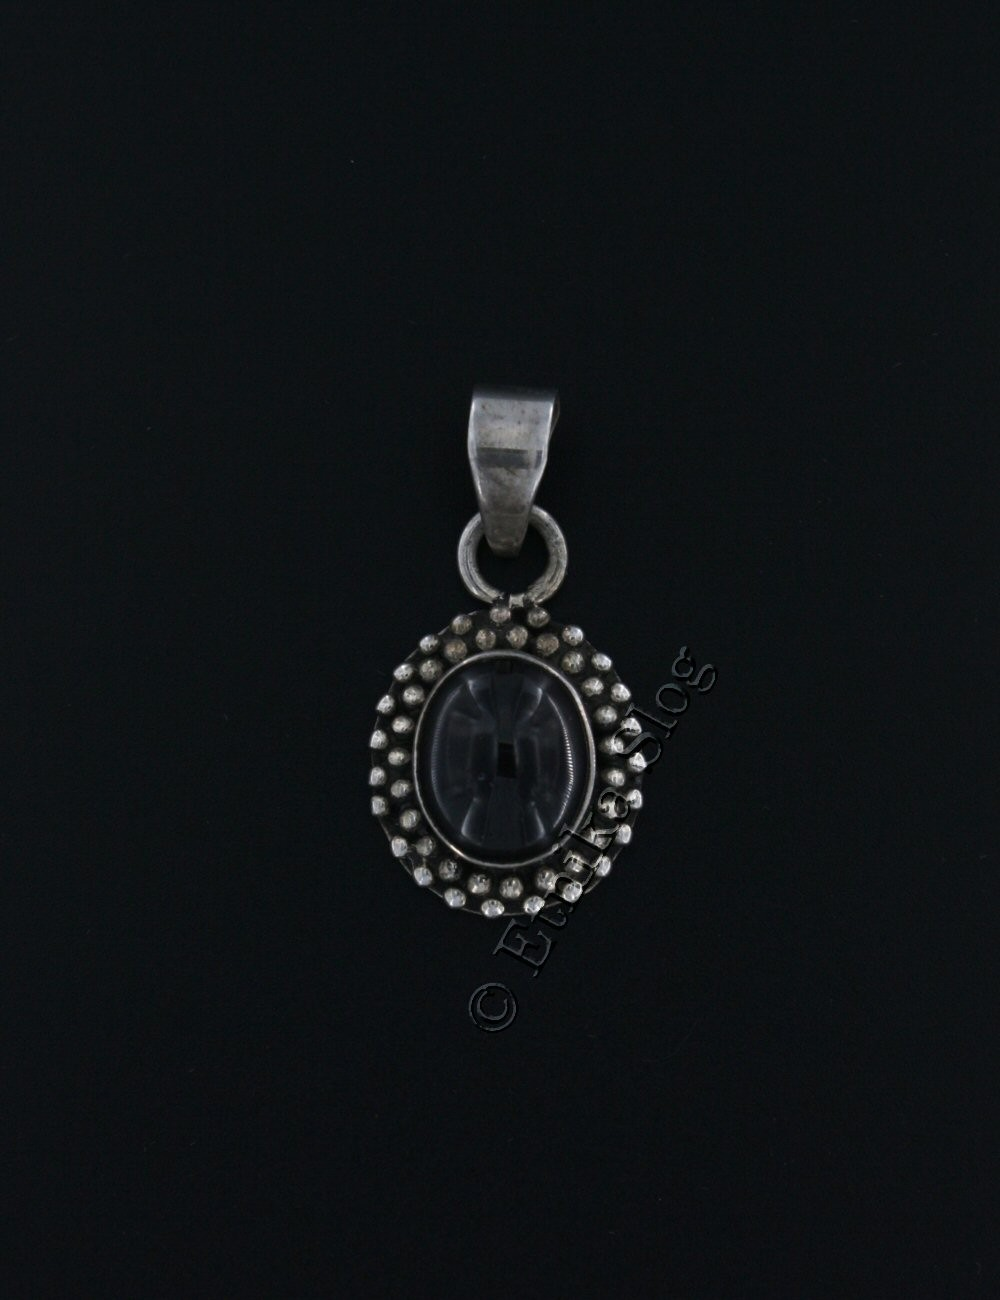 SILVER AND STONE PENDANTS ARG-PP500-01 - Oriente Import S.r.l.